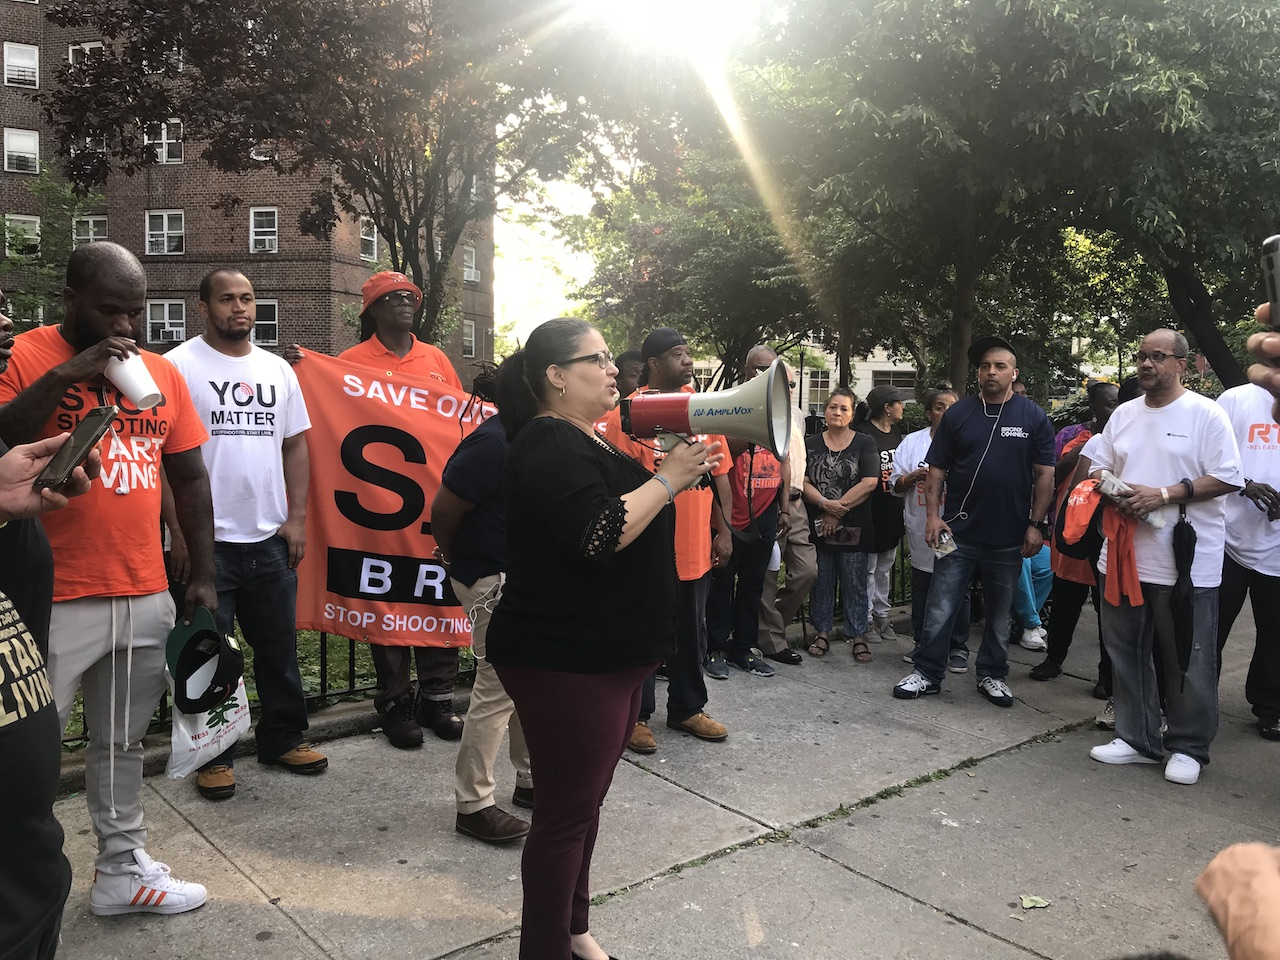 Fatal shooting at Patterson Houses prompts anti-gun protest